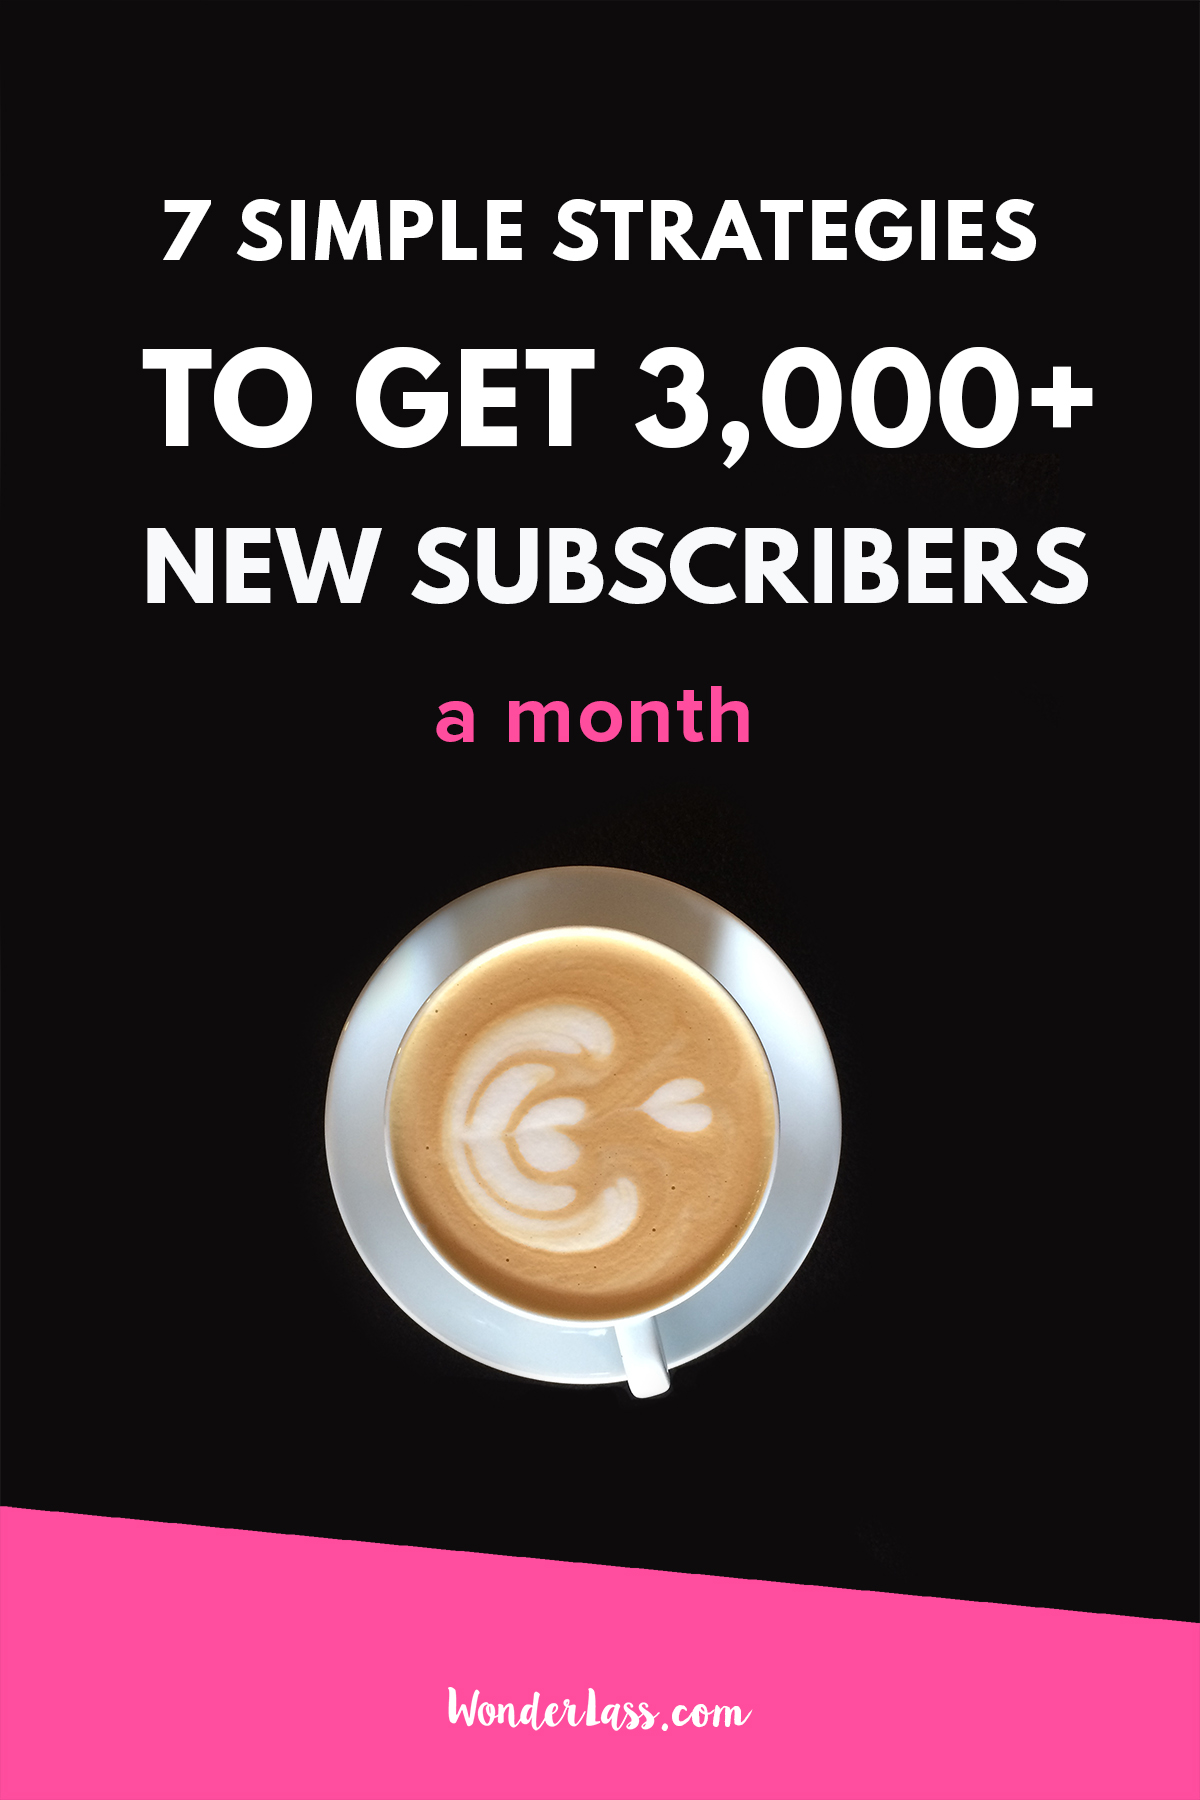 7 Simple Strategies to get 3,000+ Subscribers a Month